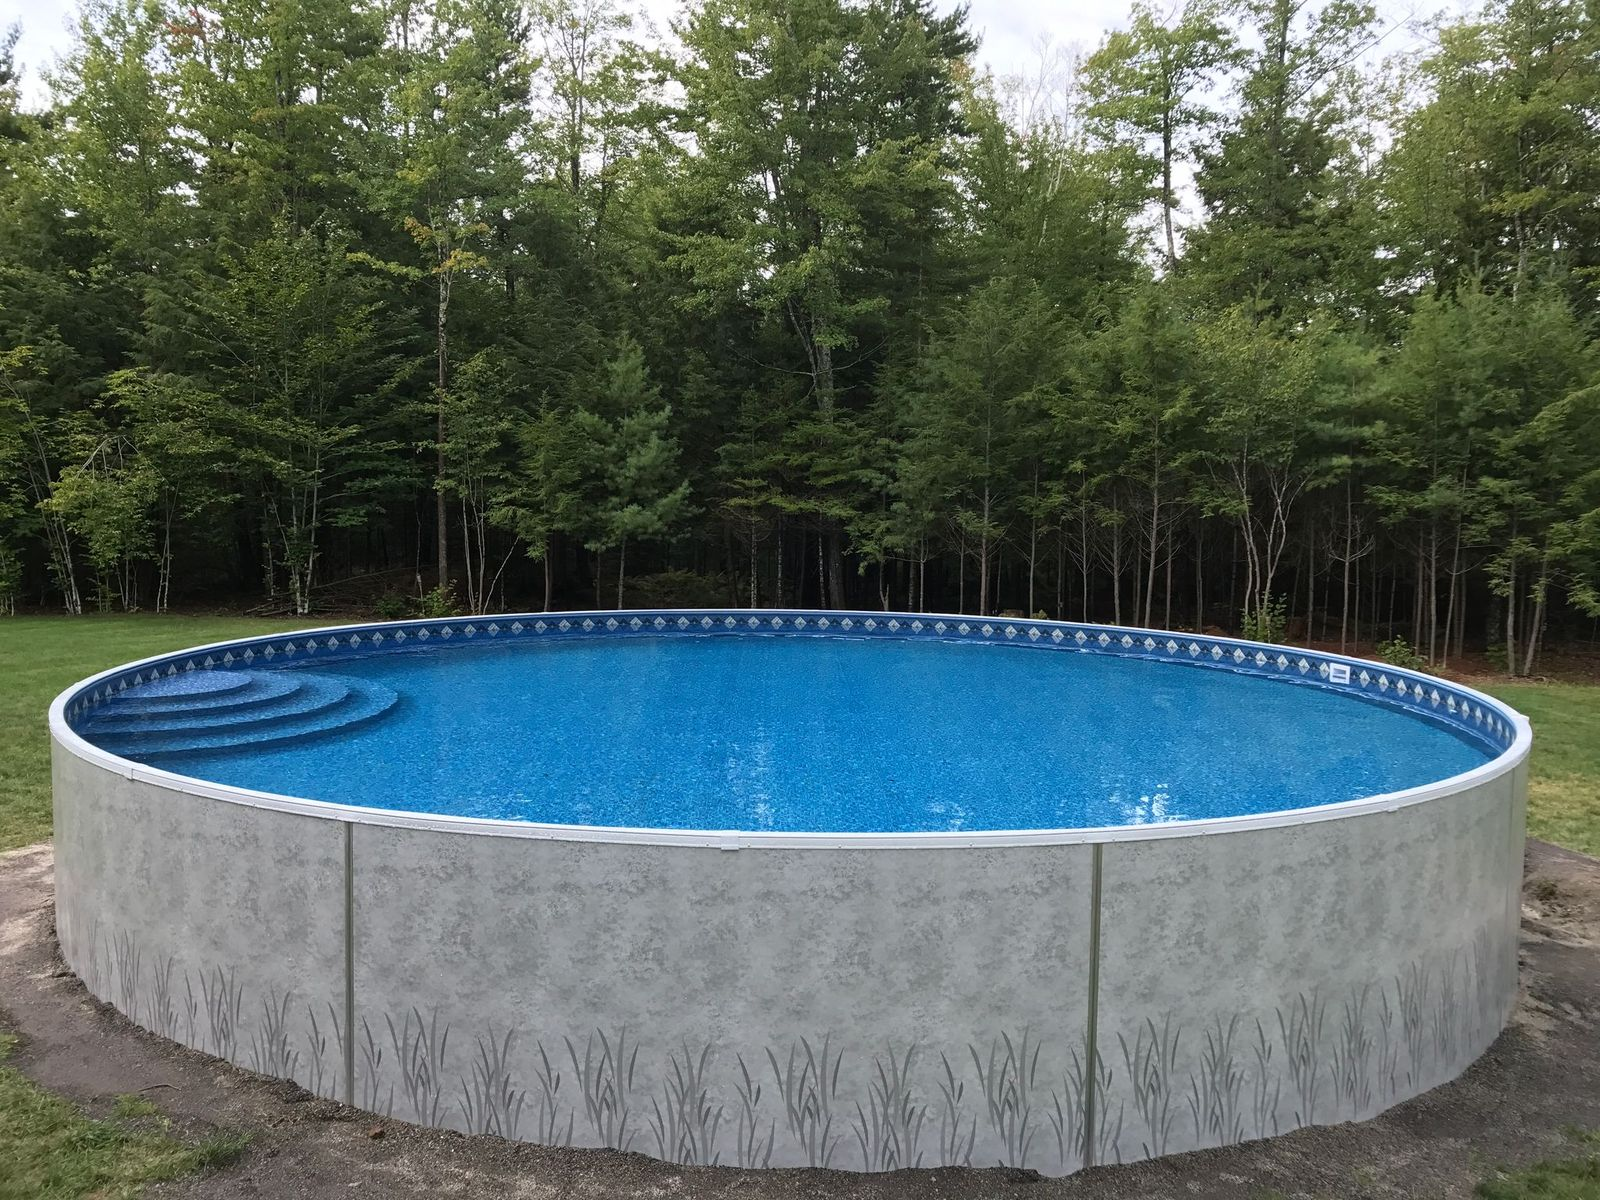 Prepping Your Above Ground Pool for Winter